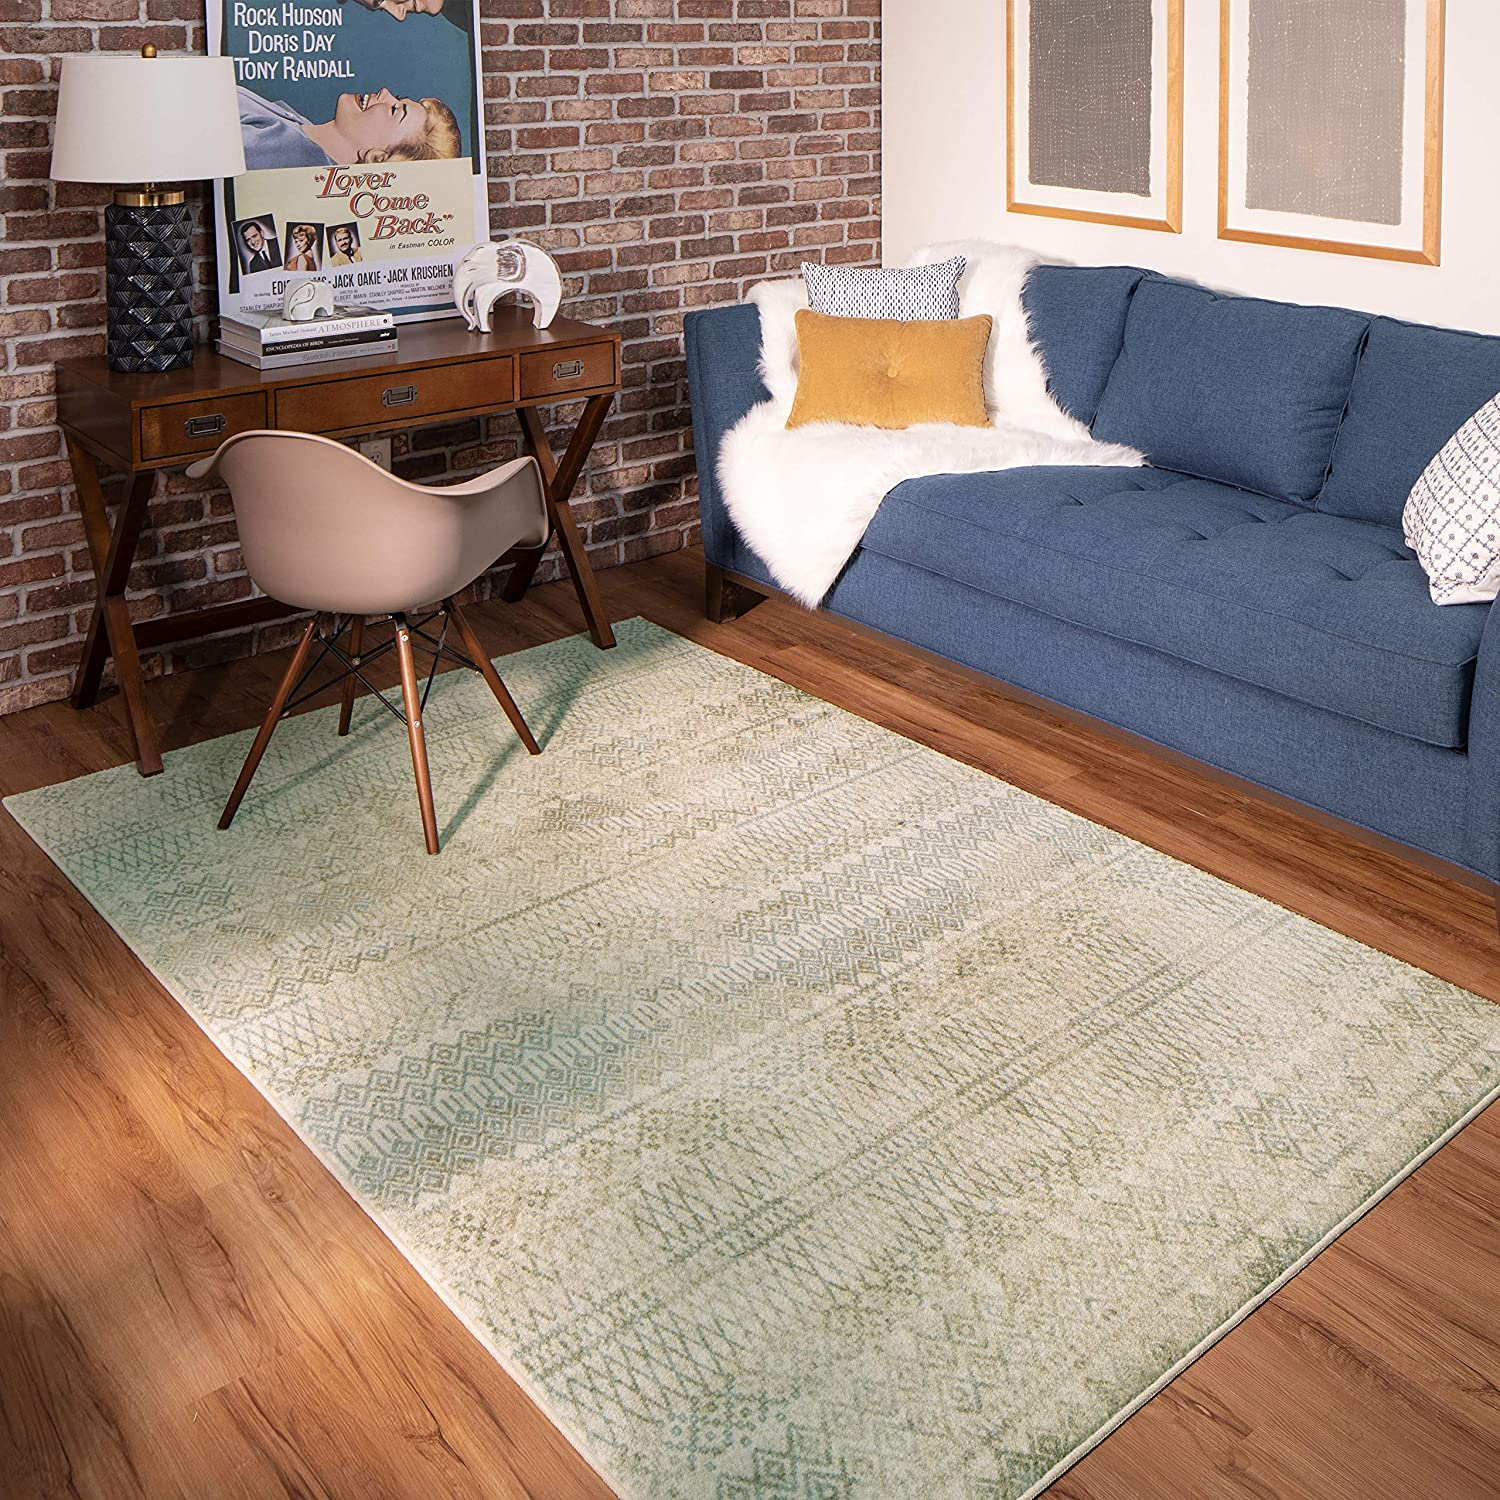 Mohawk Home Prale Earth Geometric Area X 9' 6' Rug Free shipping anywhere in Al sold out. the nation